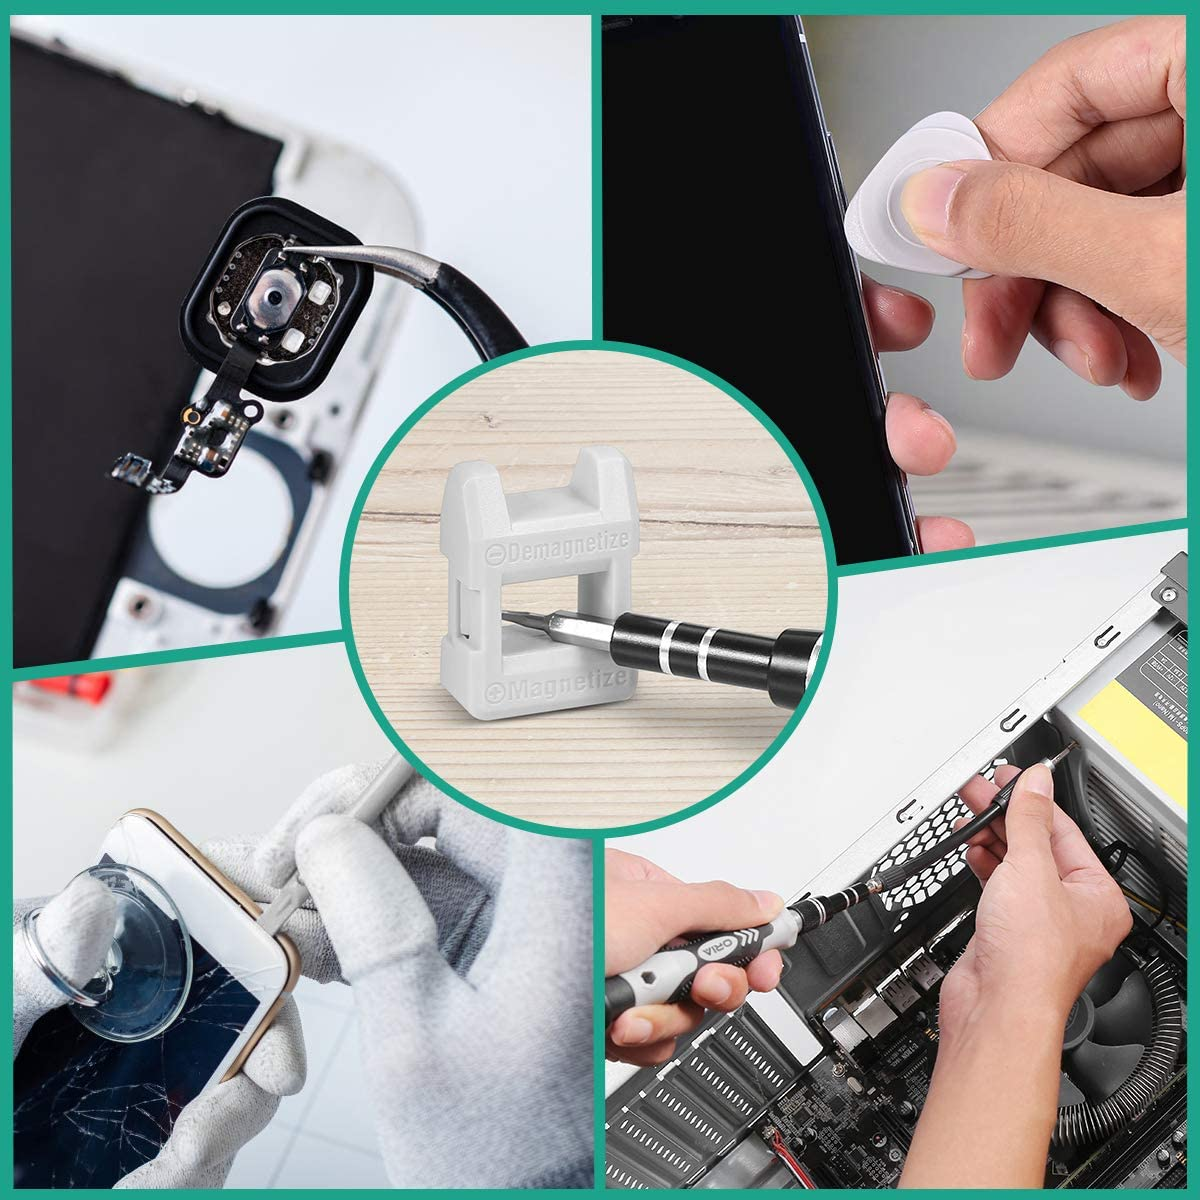 Precision Repair Tools Kit ORIA NEW Magnetic Screwdriver Set Perfect for iPhone iPad Laptops PC Watches Magnetizer A Gift for Friends etc. 52 in 1 Professional Driver Bit Kit with Flexible Shaft